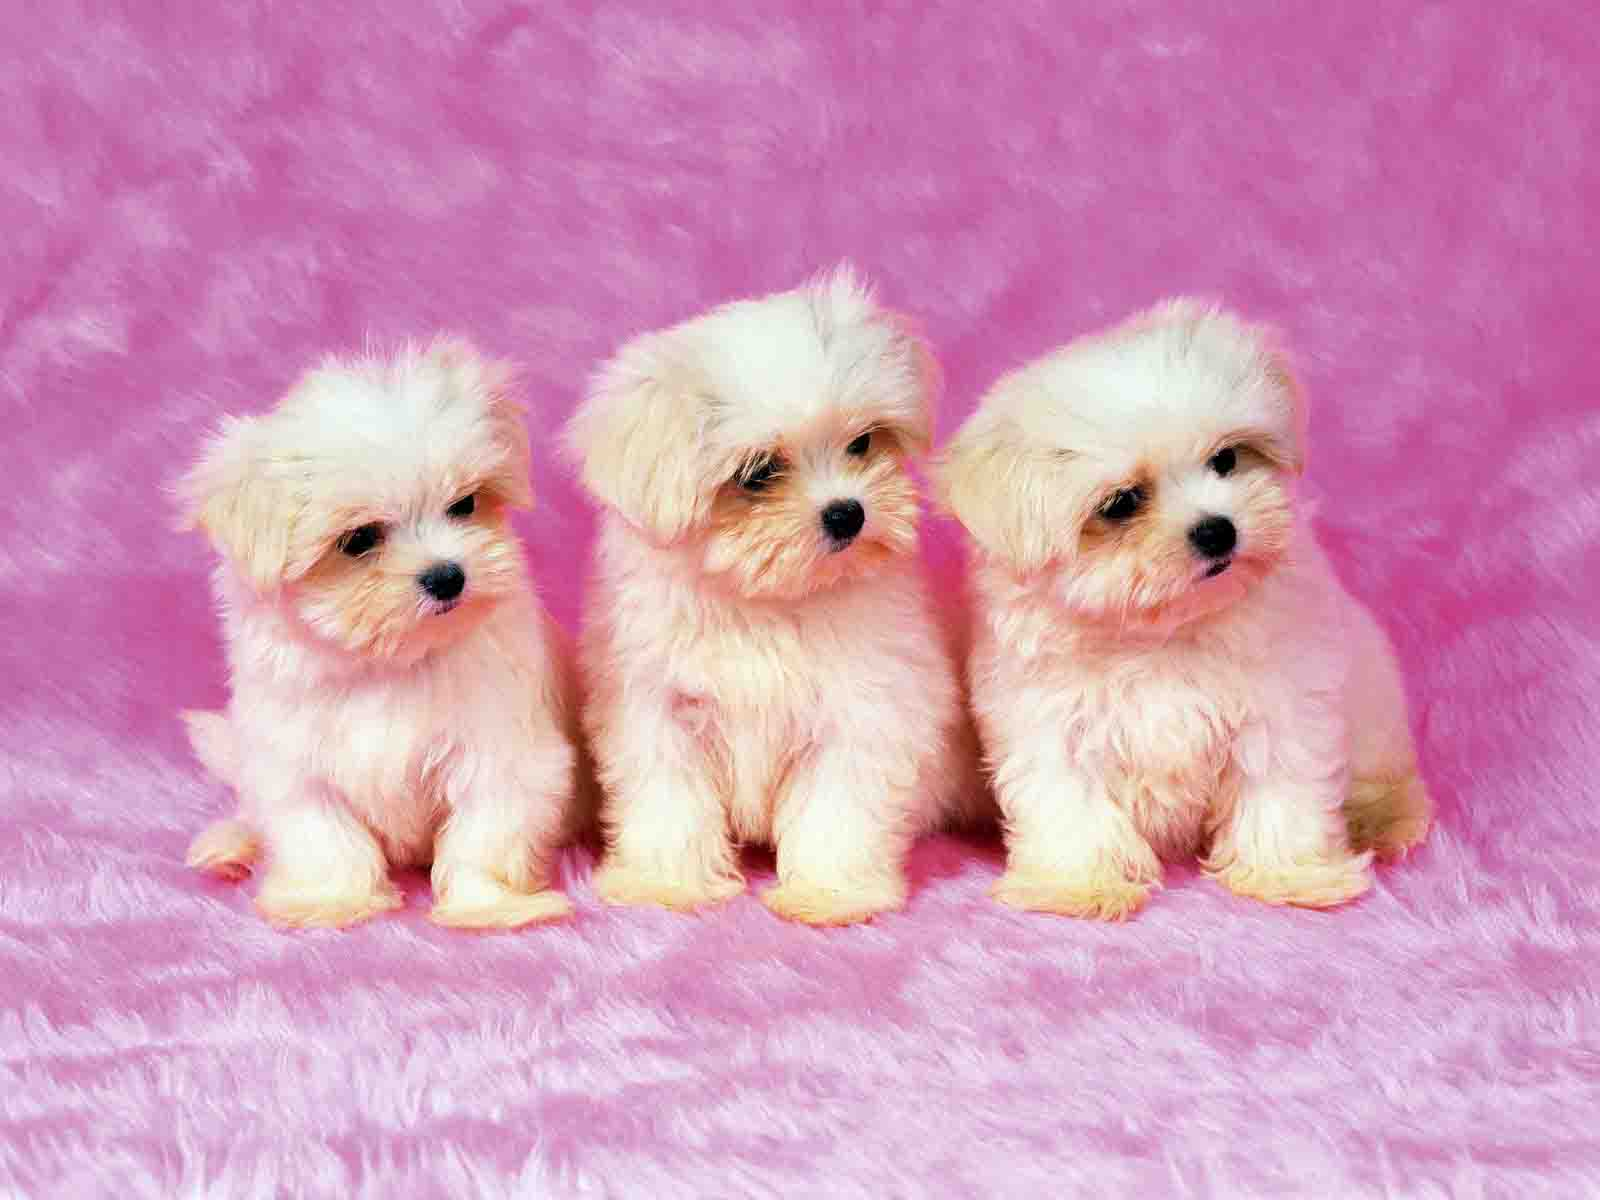 Puppy Backgrounds For Computer   Wallpaper Cave Funny and Cute  CUTE PUPPY HD WALLPAPERS  cute wallpaper desktop